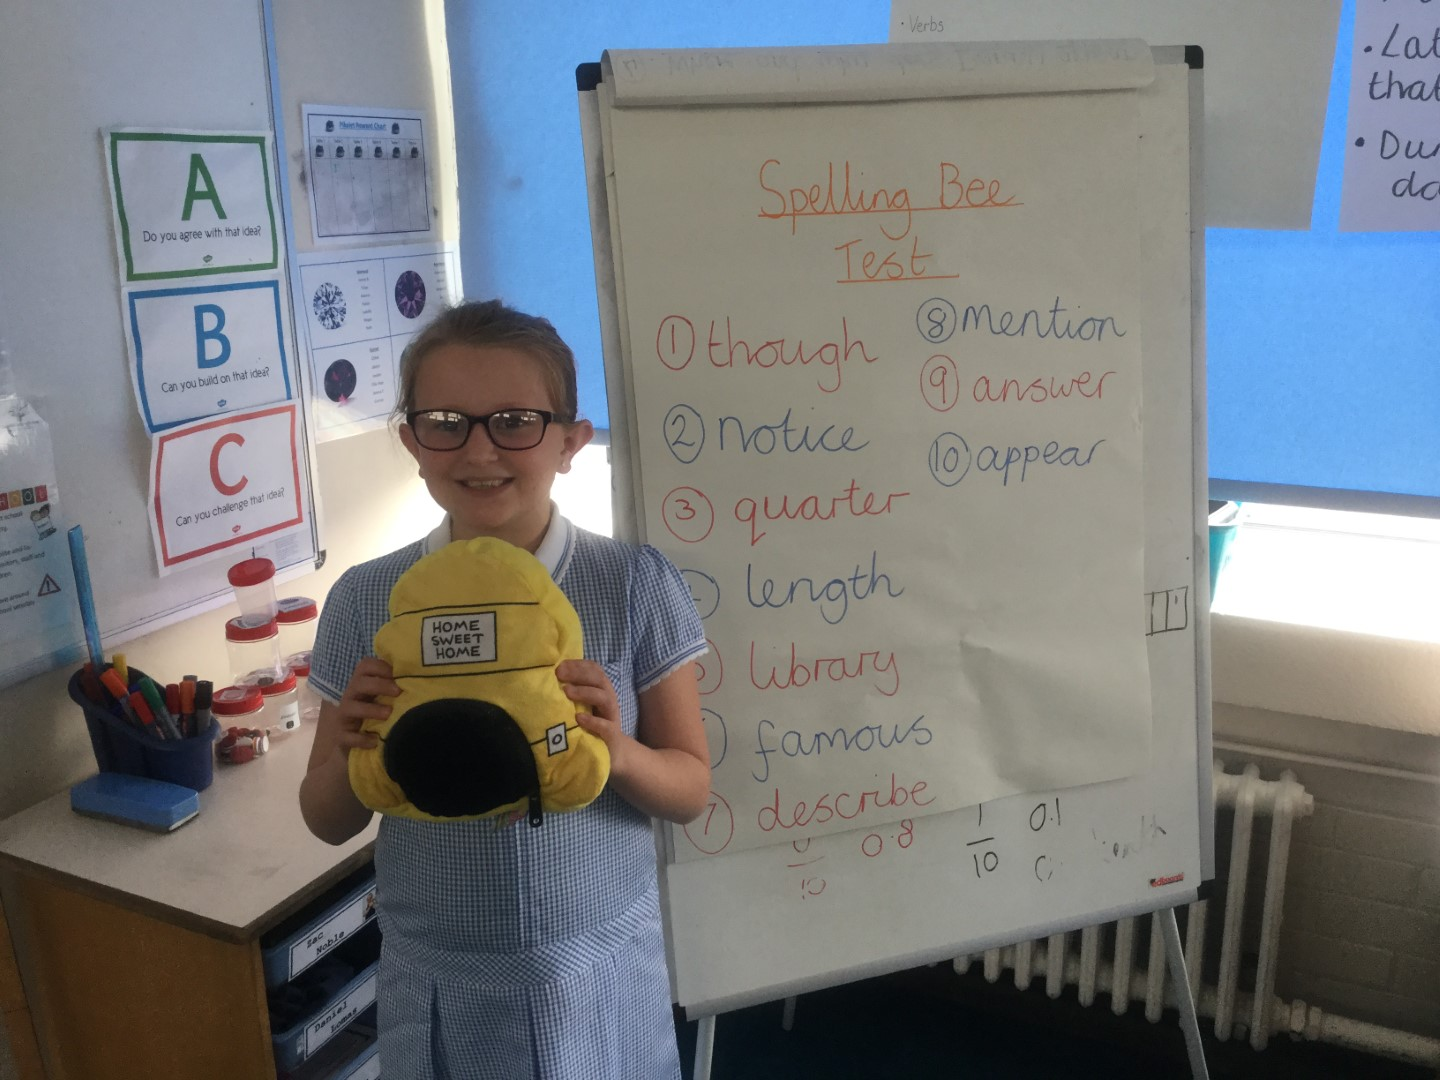 Our new 'Spelling Bee Champion' is Megan, as she scored 7 out of 10 on the 'Spelling Bee Test'. Well done Megan! -